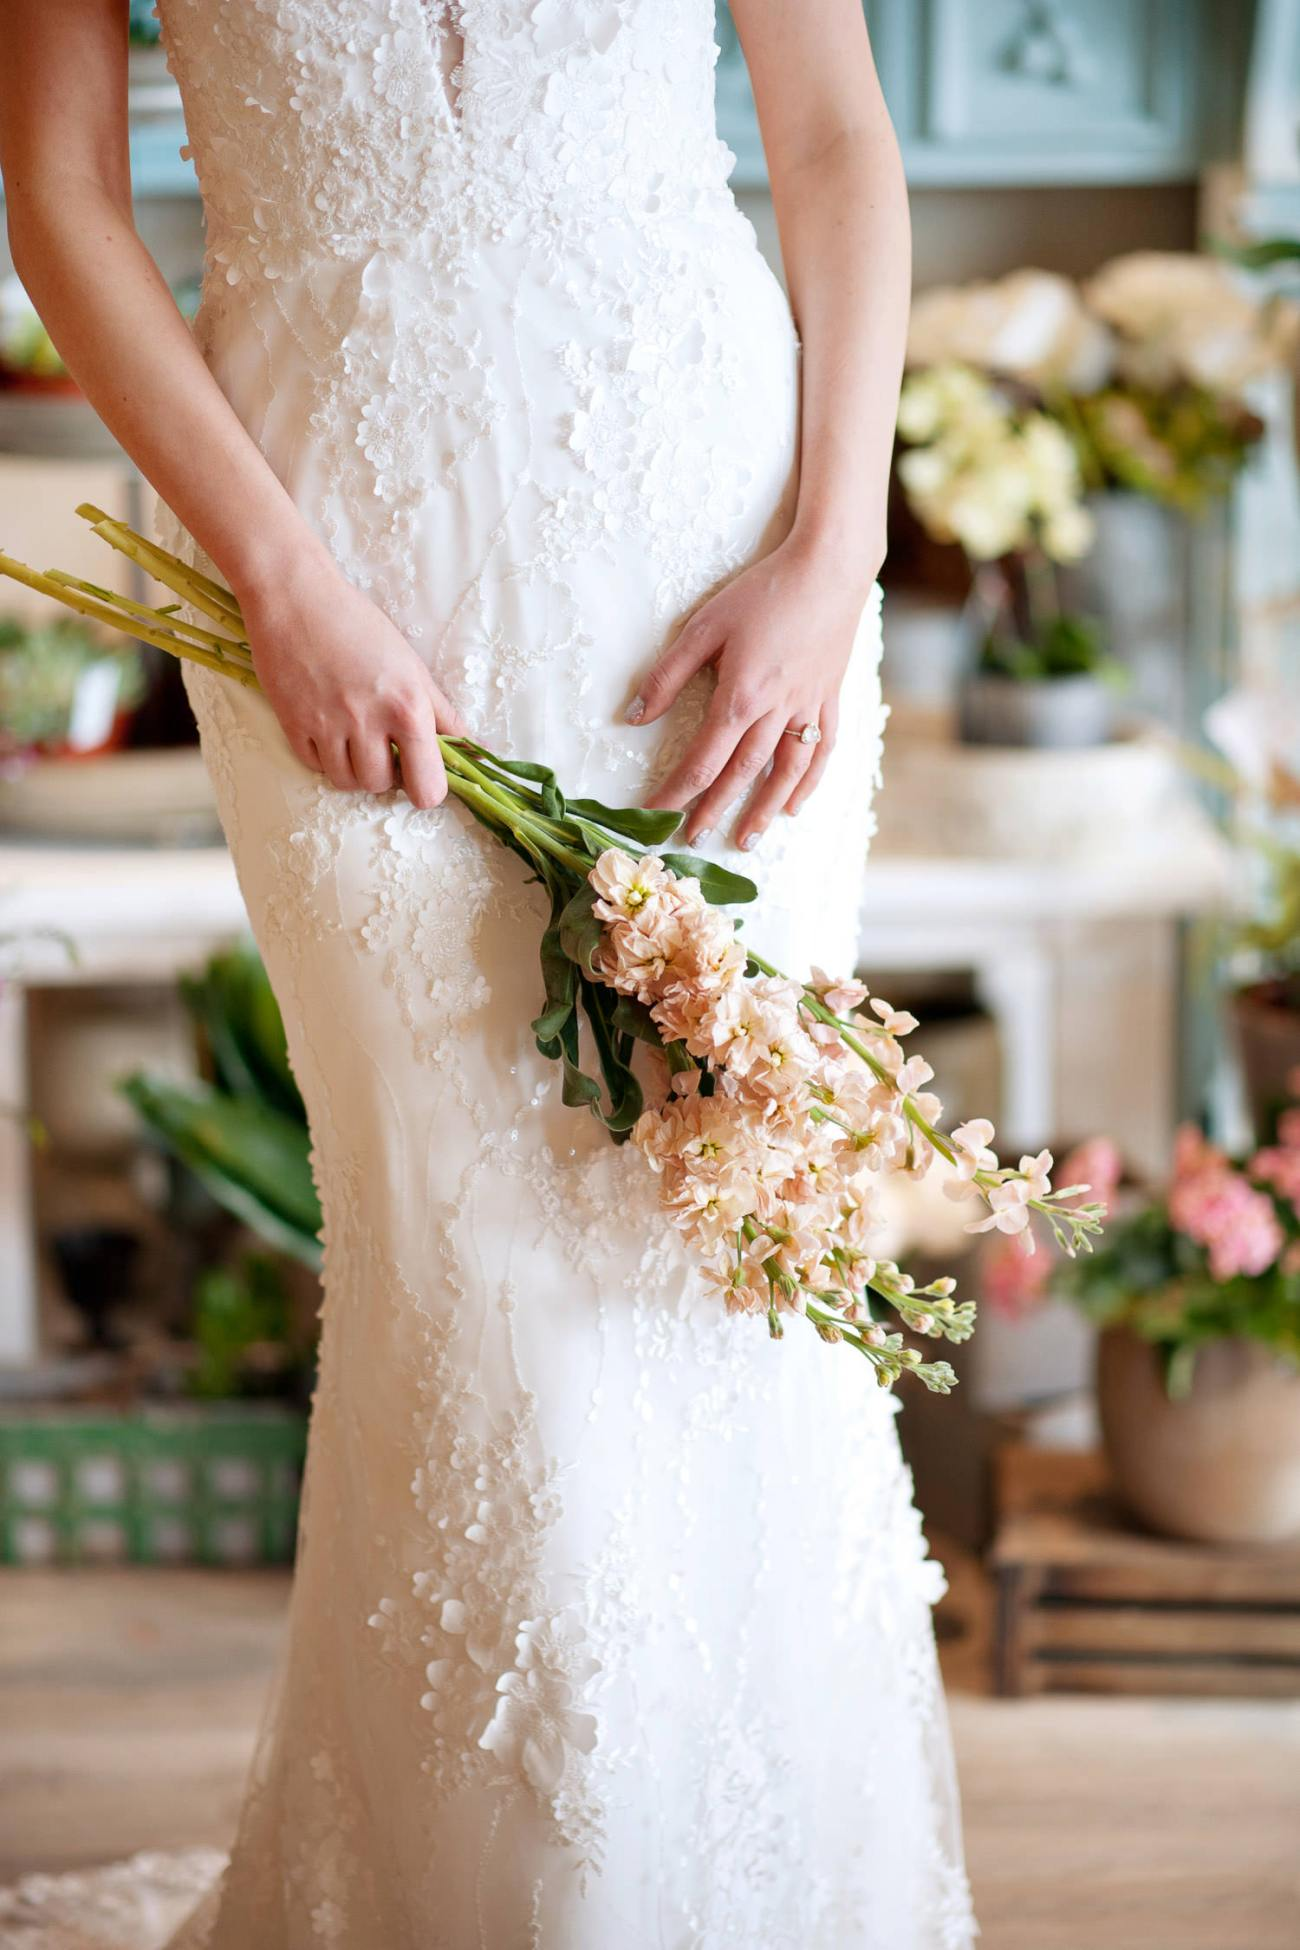 Close-up of the floral lace on bride's Lis Simon bridal gown captured by Tara Whittaker Photography